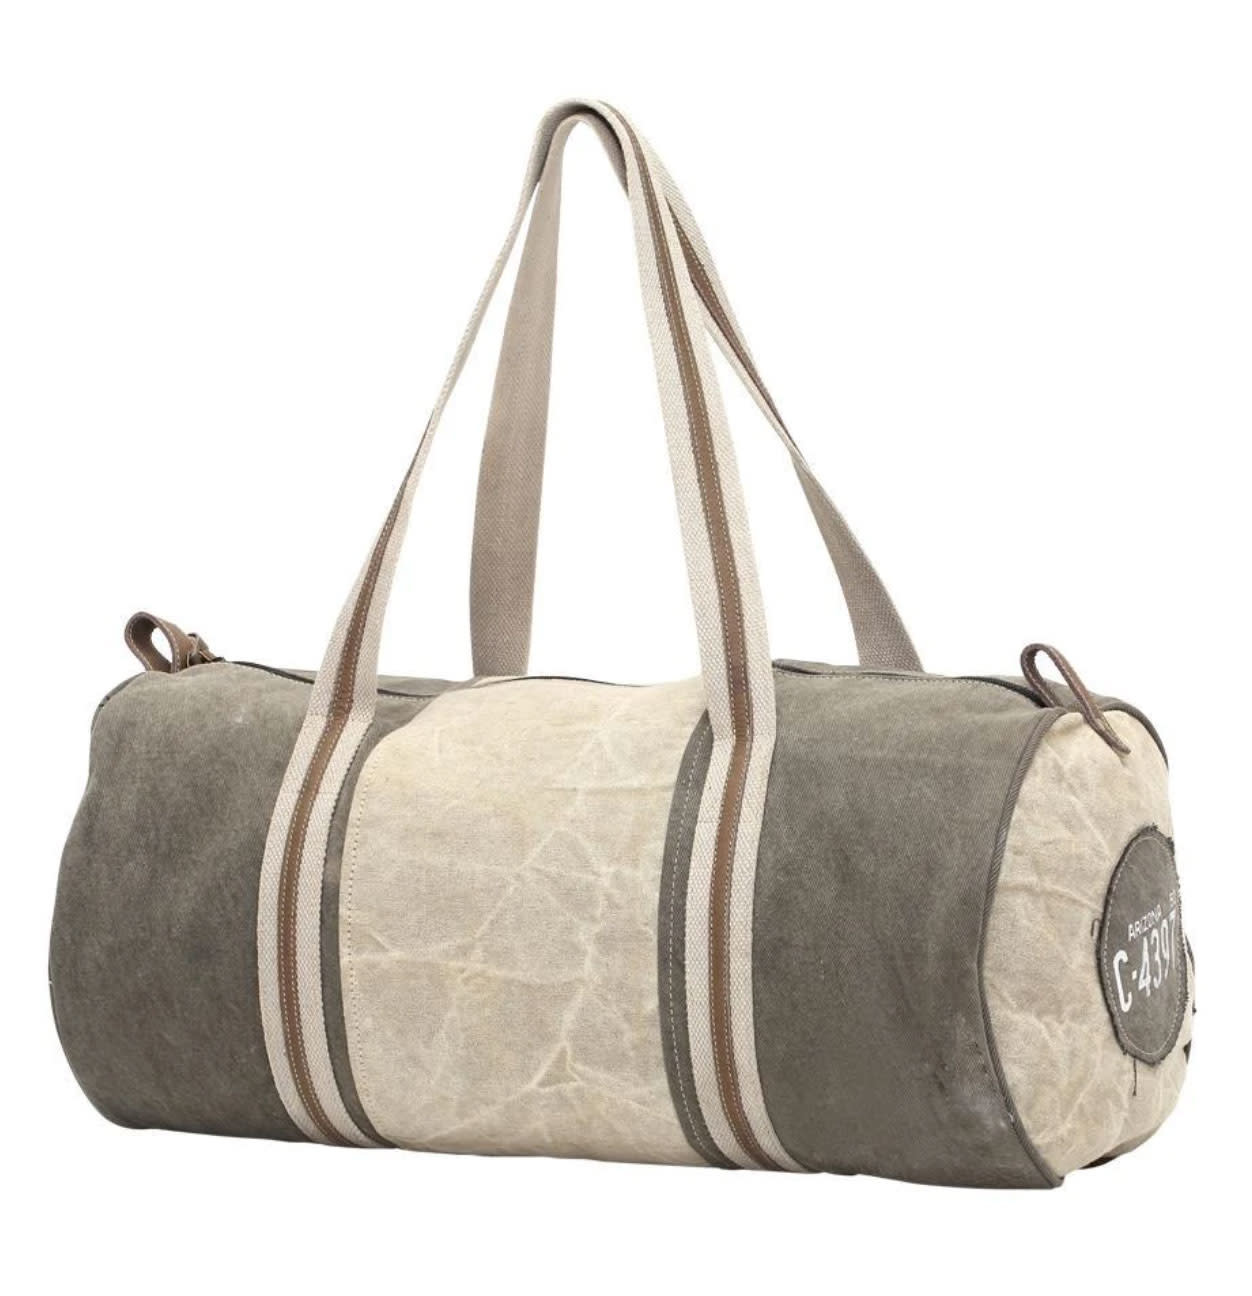 Myra Bag Handmade Duffel Bag